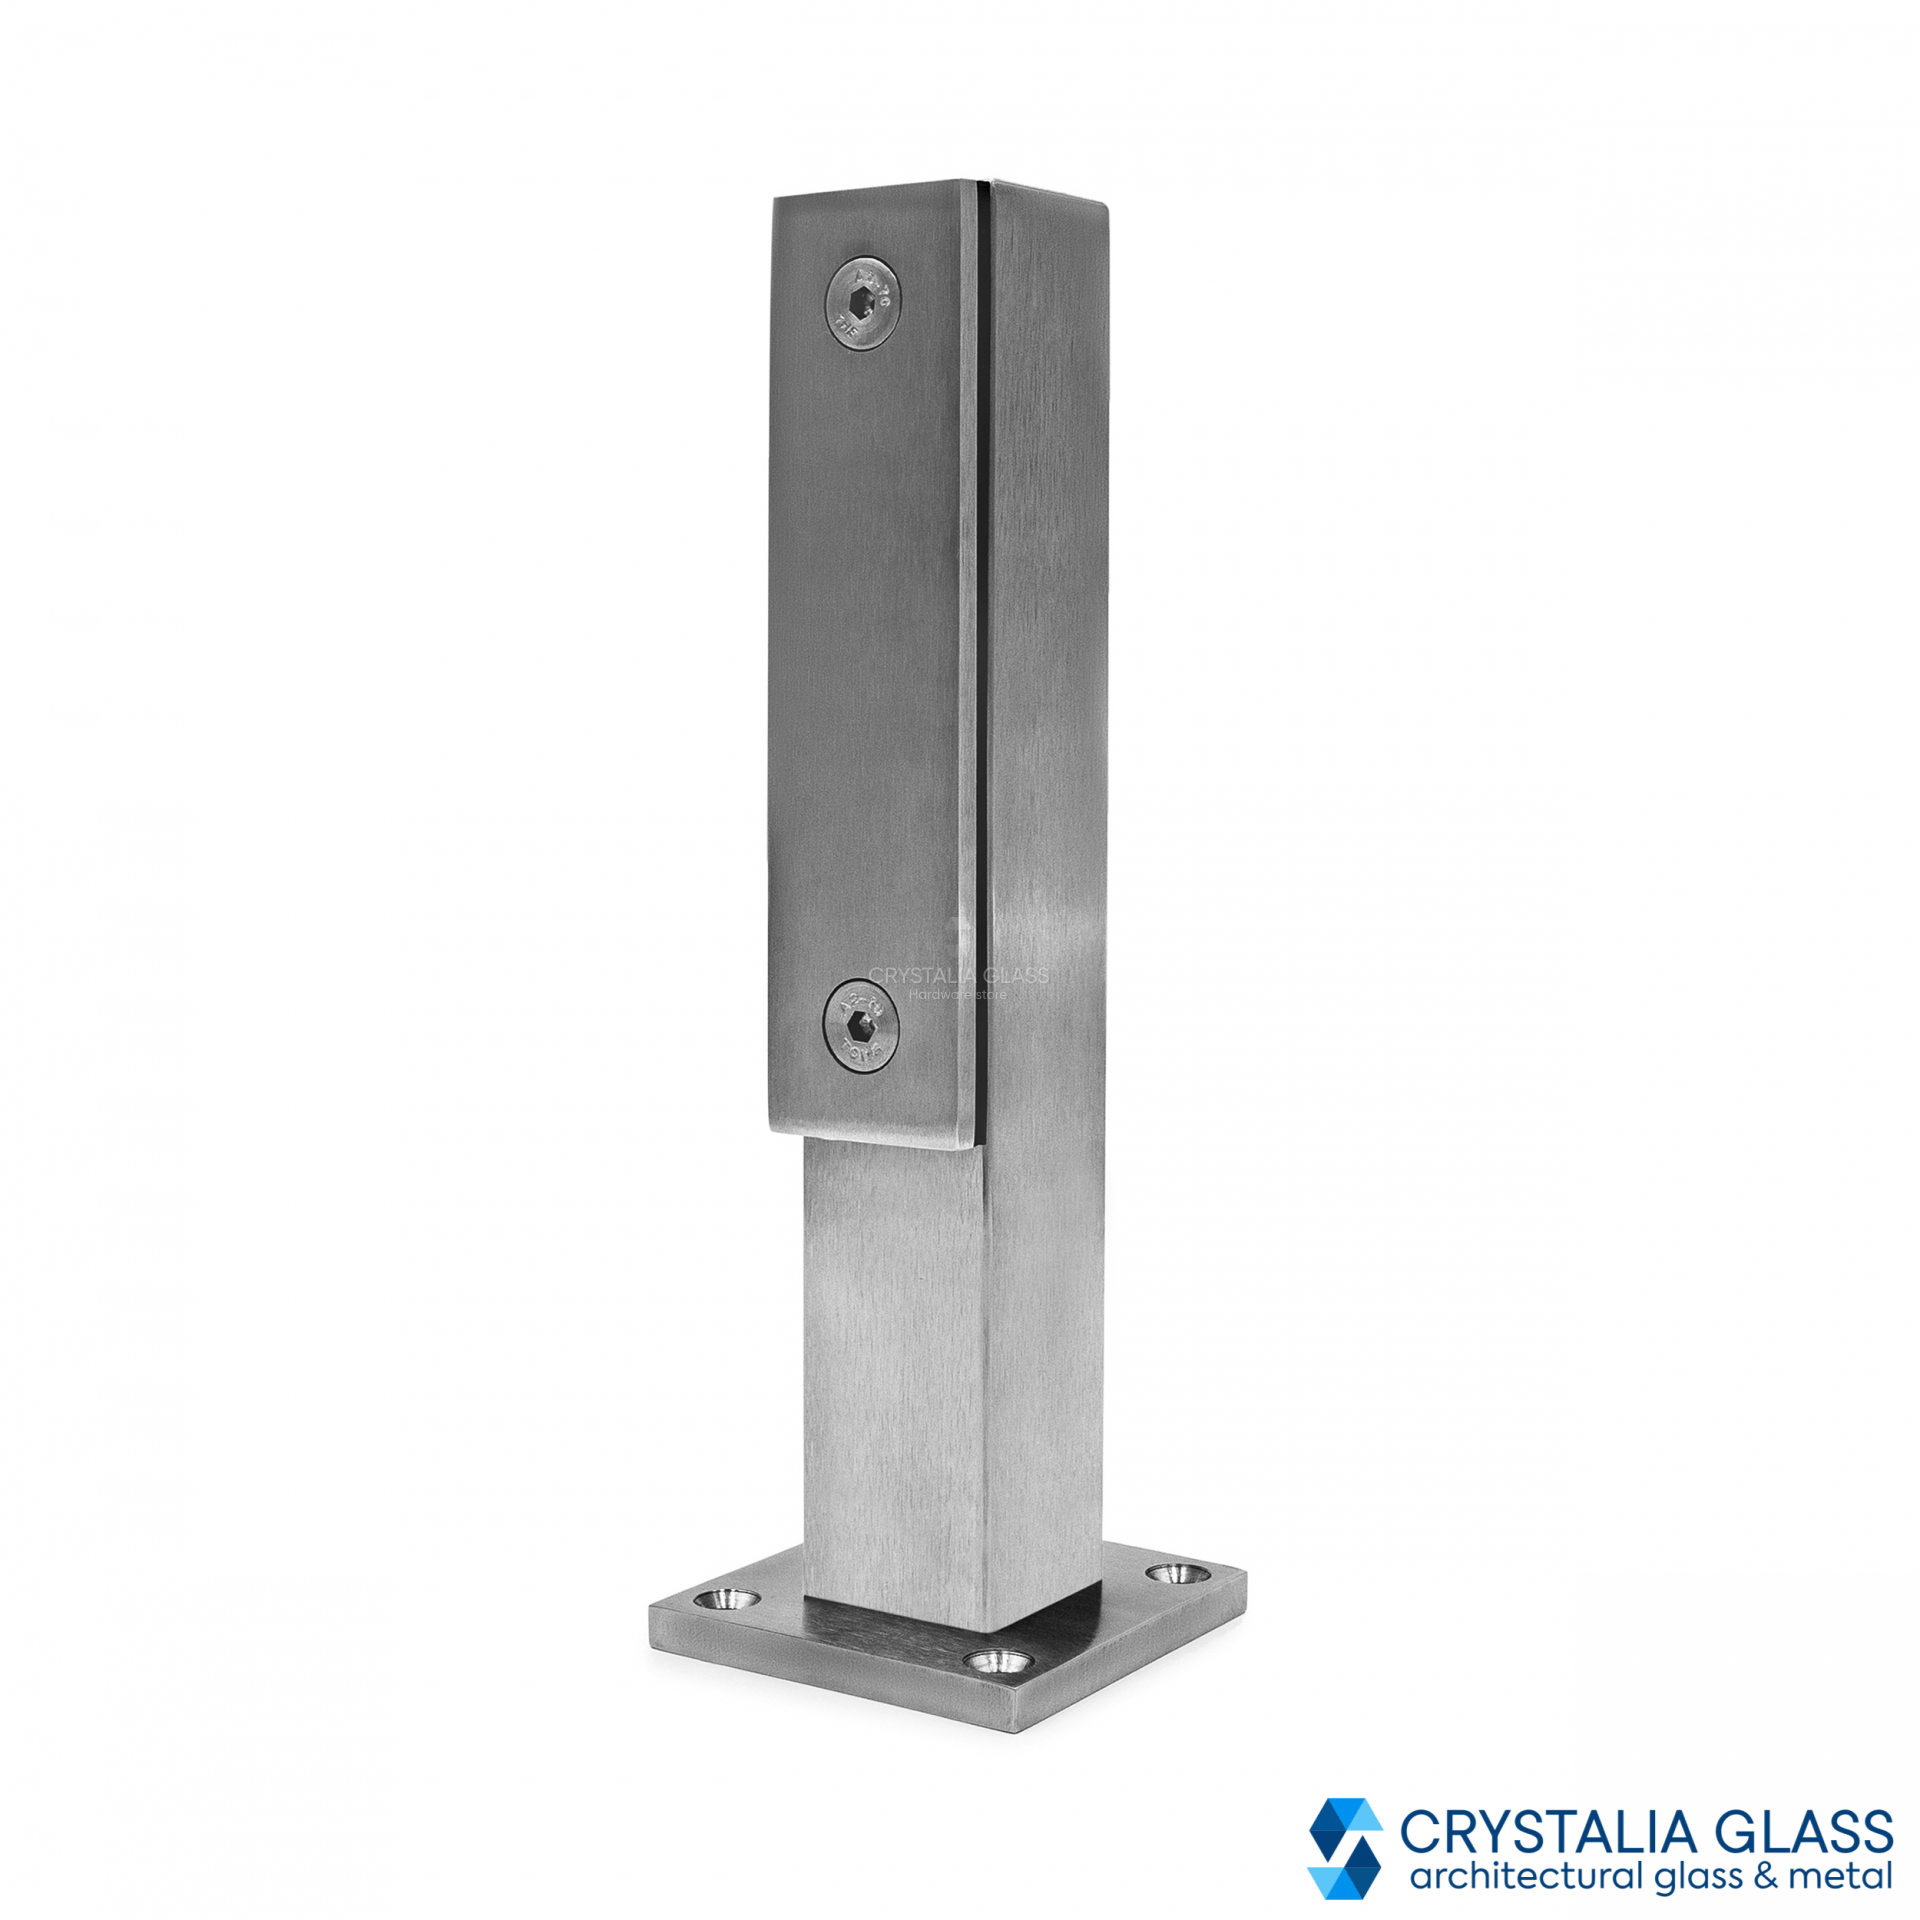 CG Brushed Stainless Steel Aluminum Post - 9-3/16